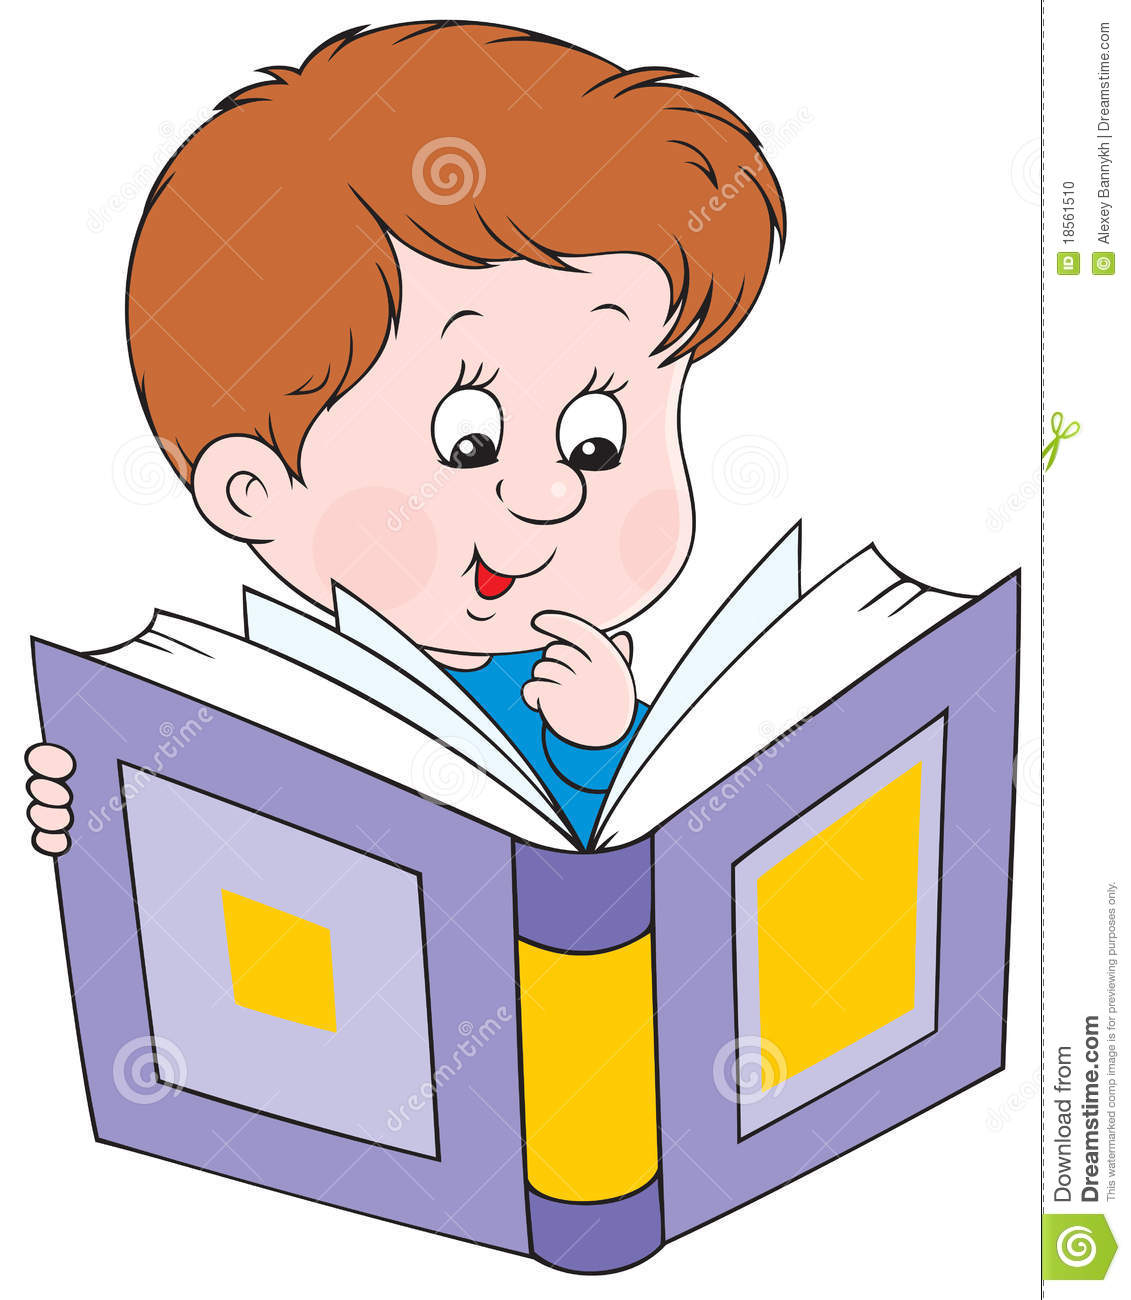 Reading boy stock vector. Illustration of illustration.